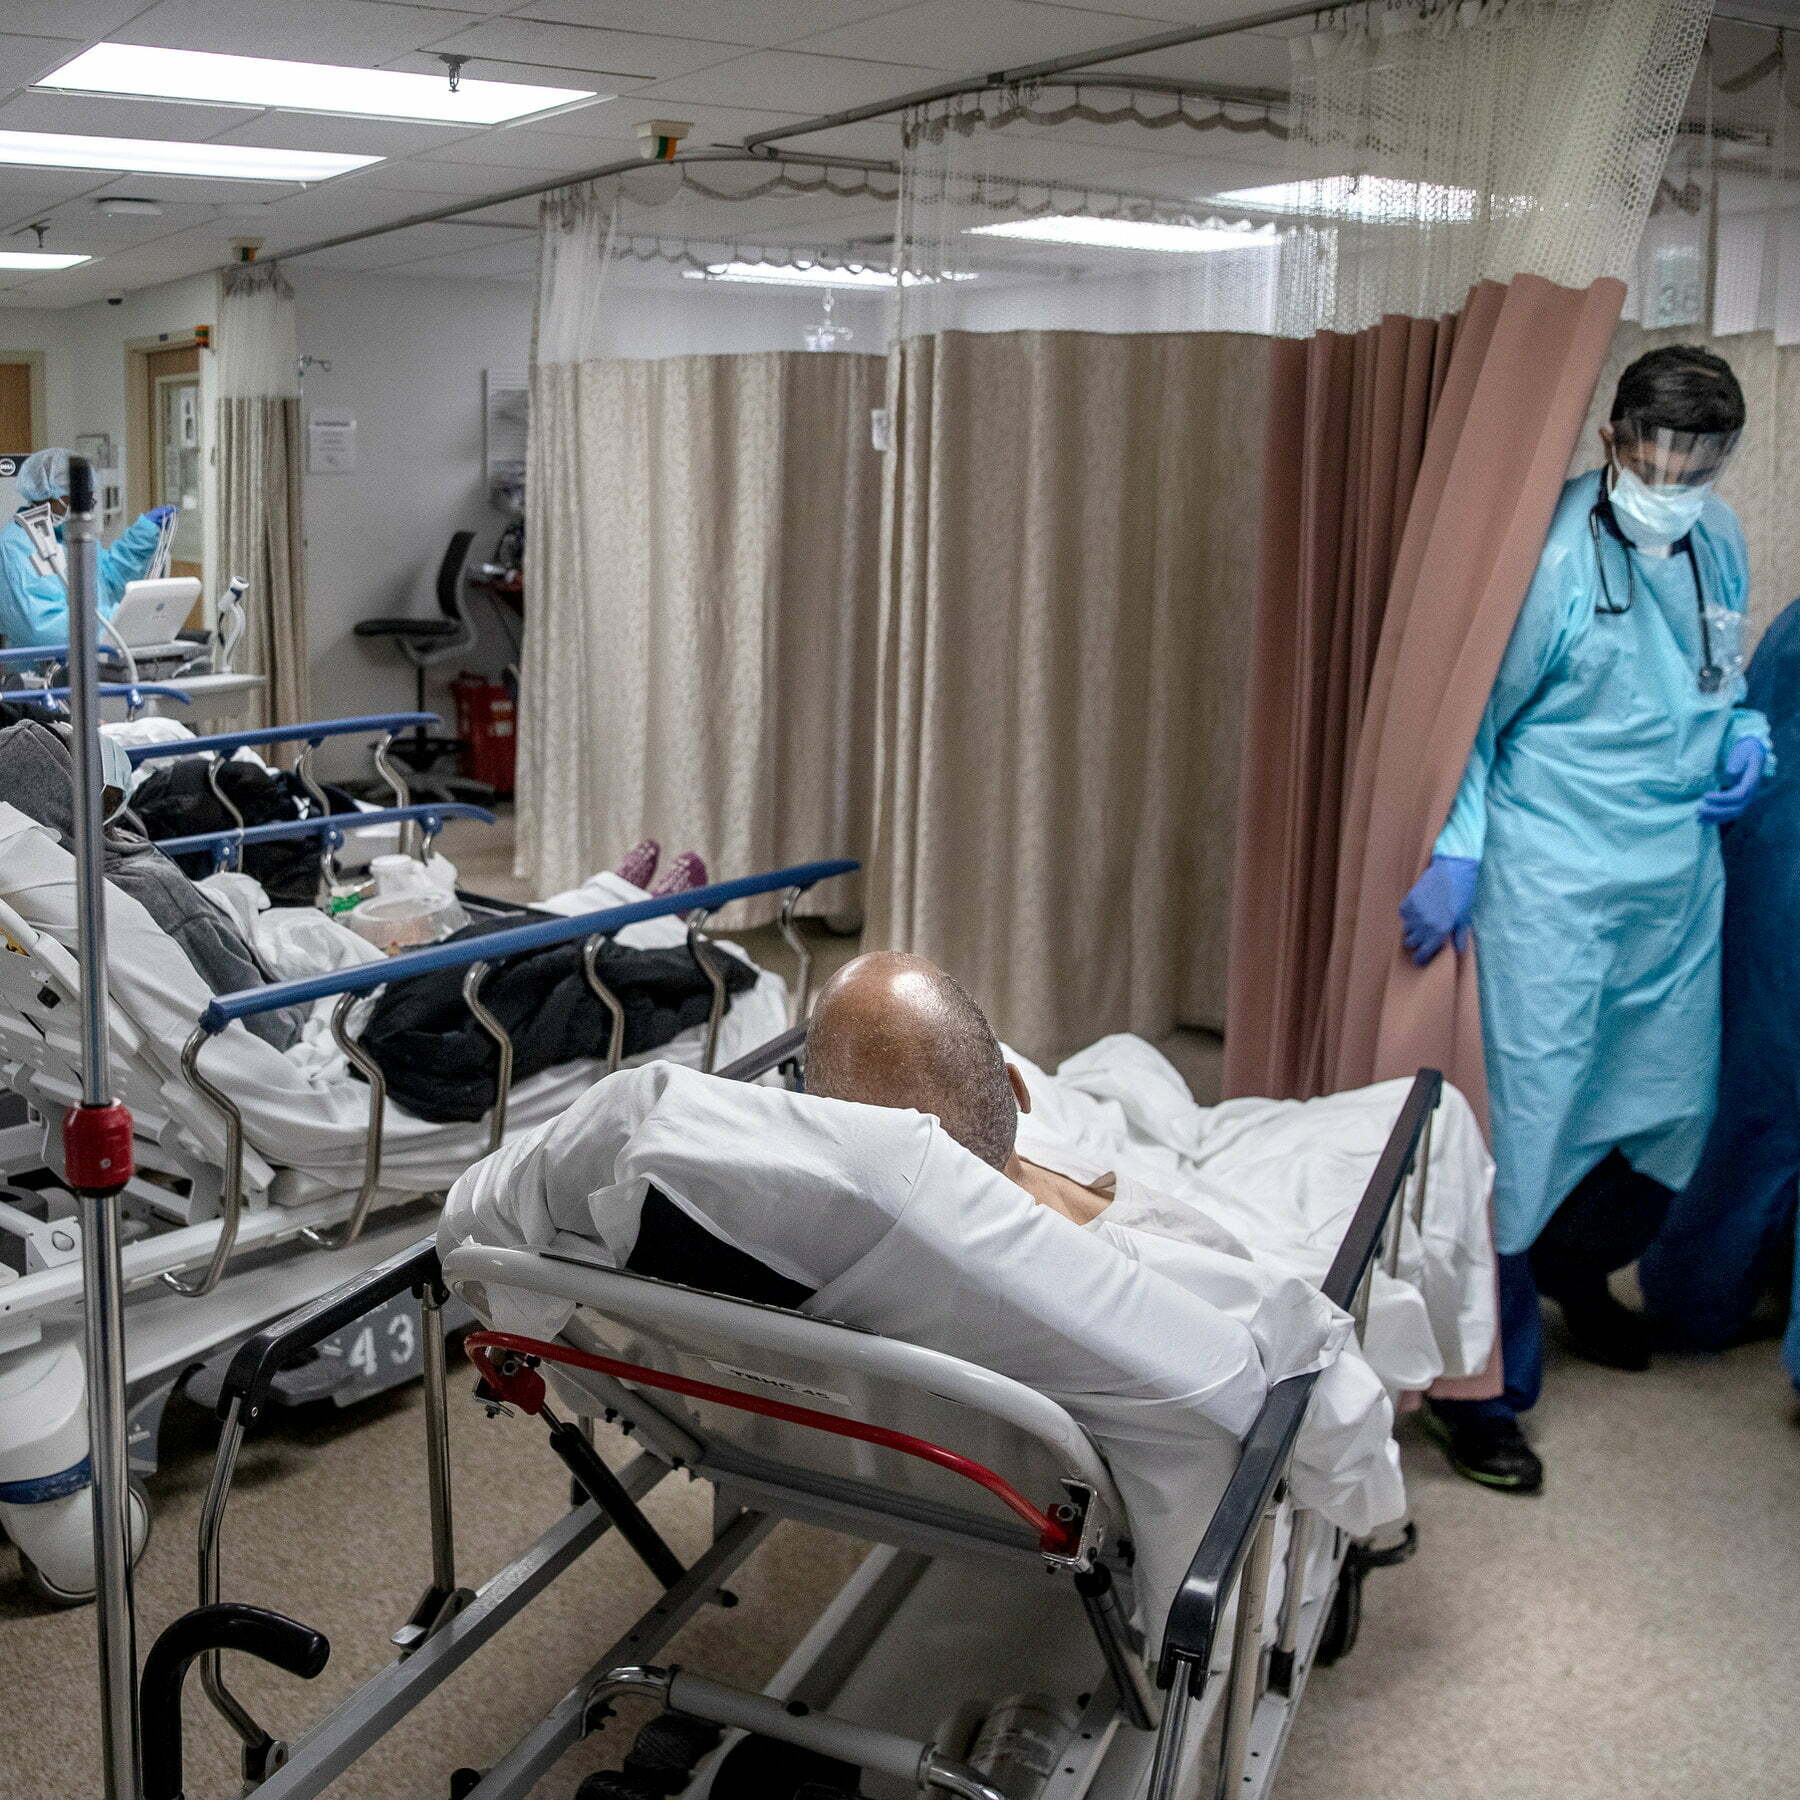 ER Visits Down As Patients Worry About COVID-19 3